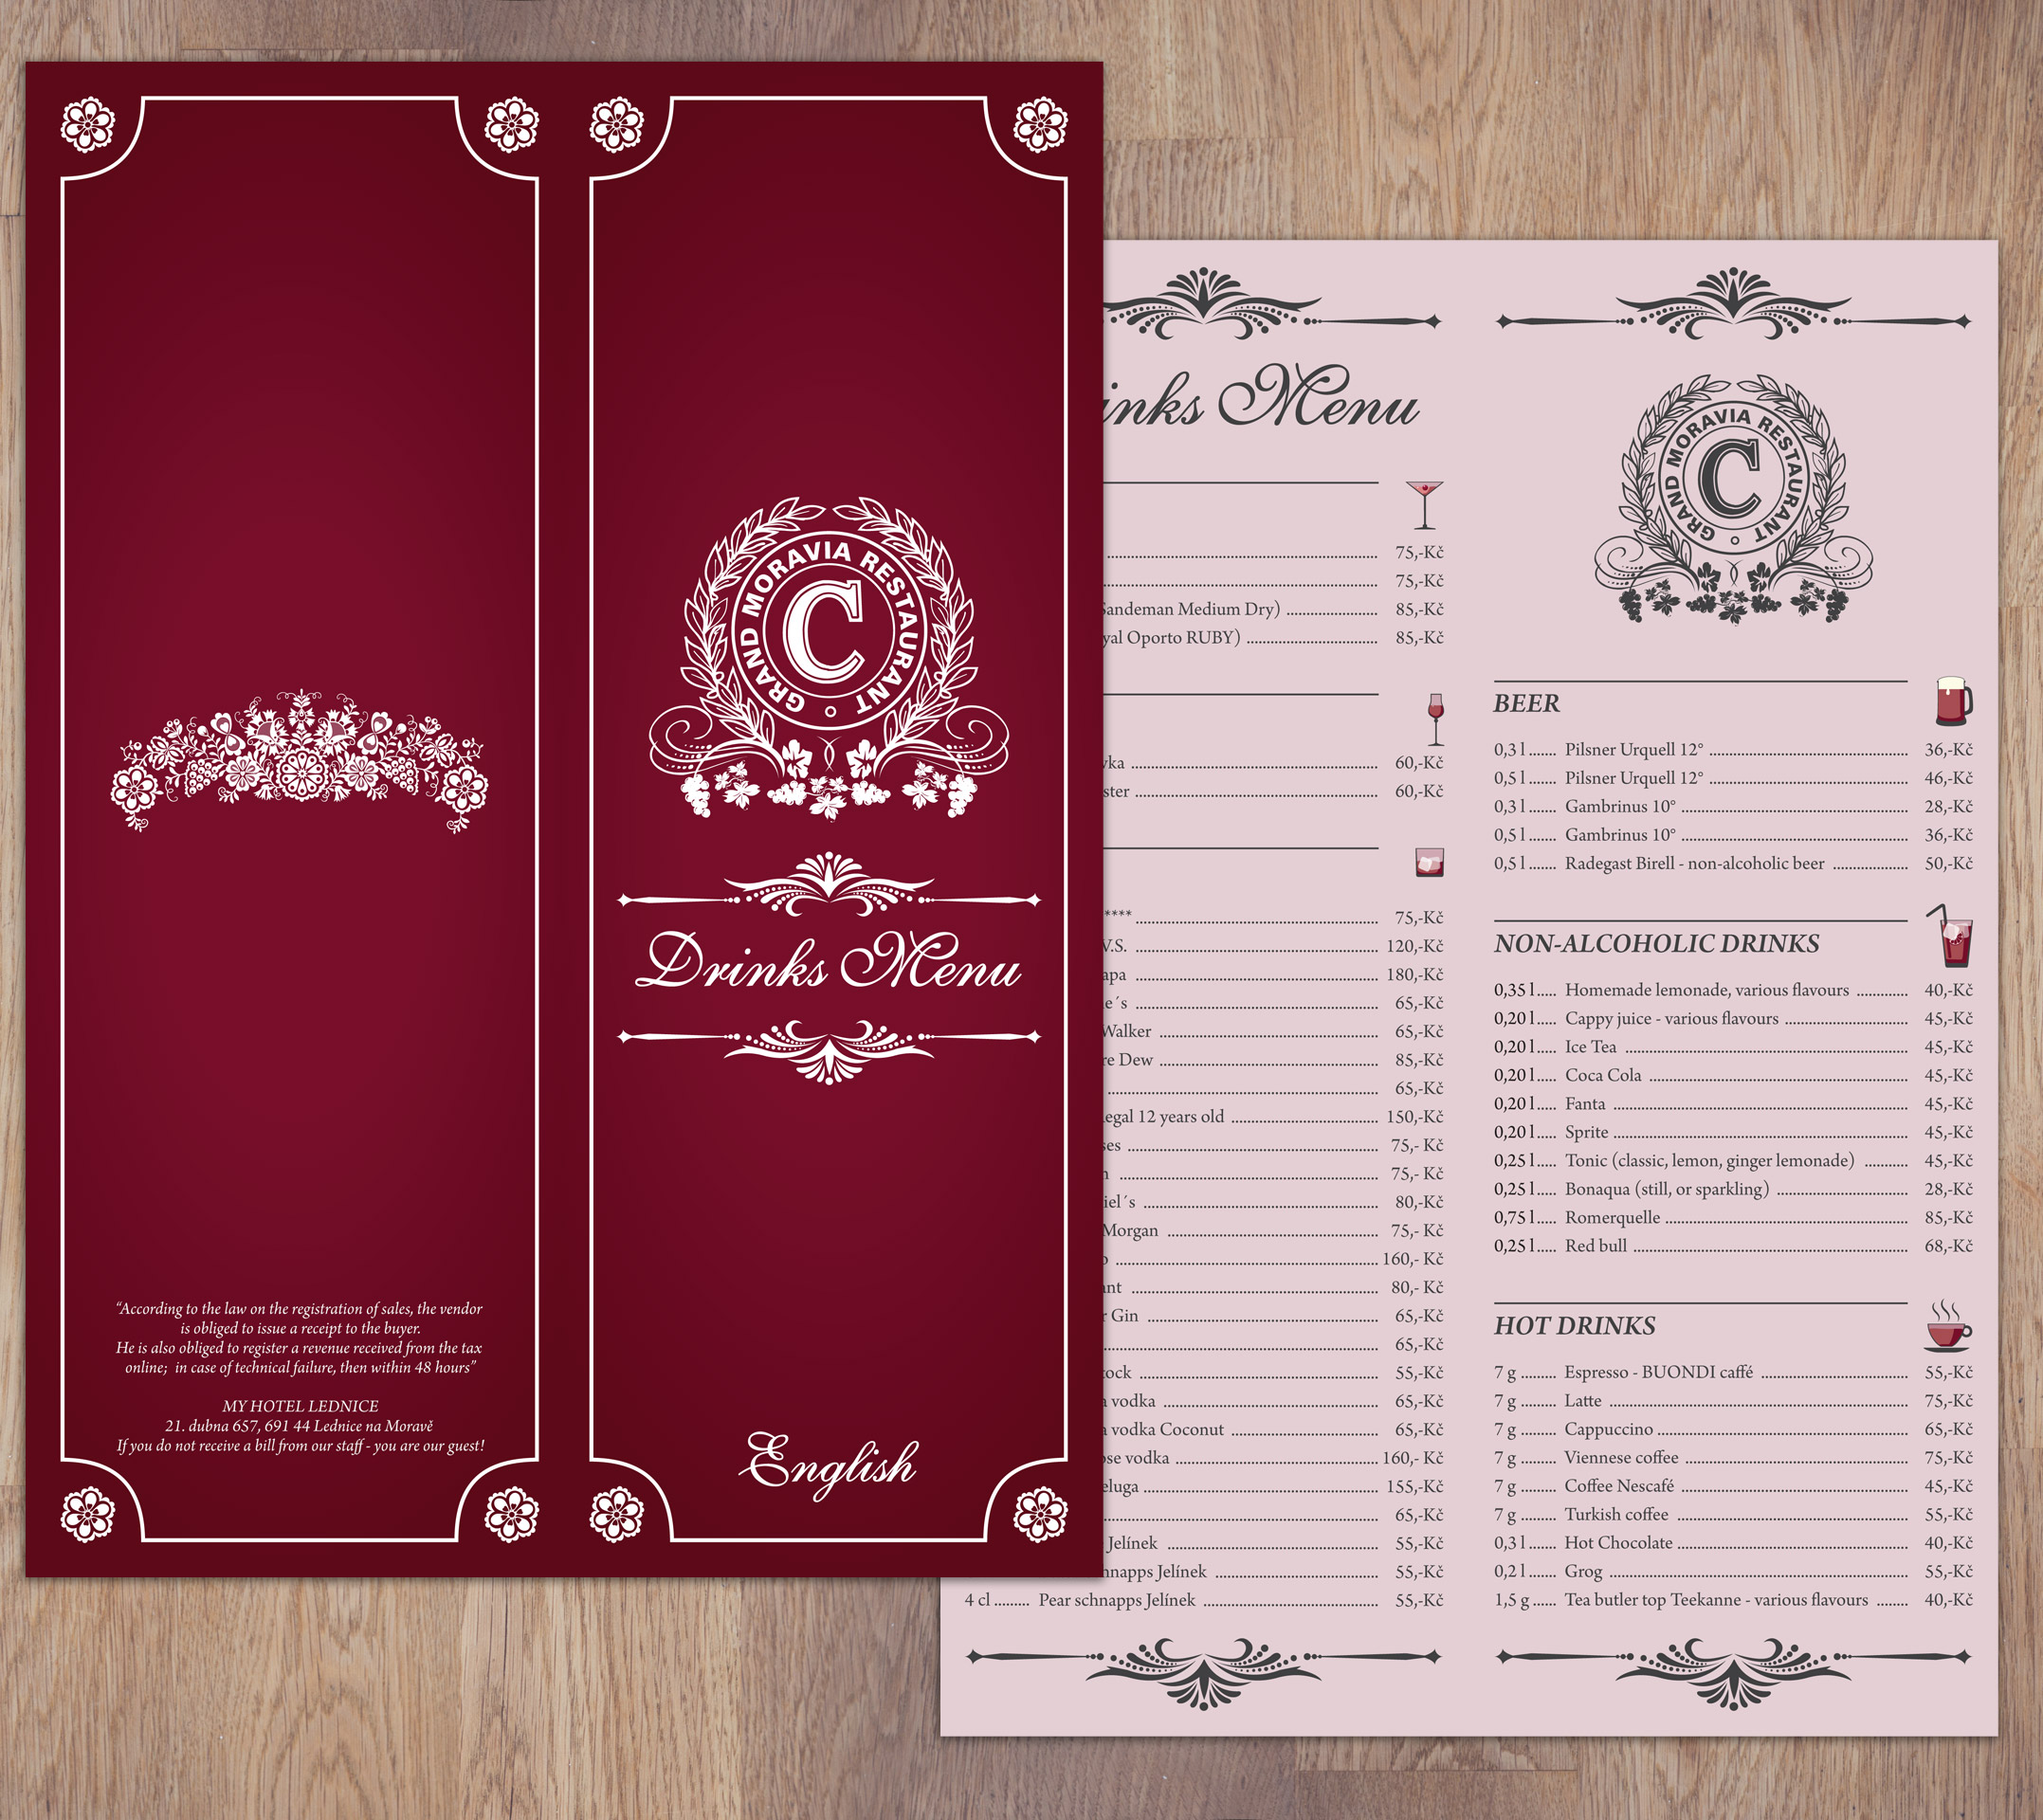 Drinks menu design for My Hotel